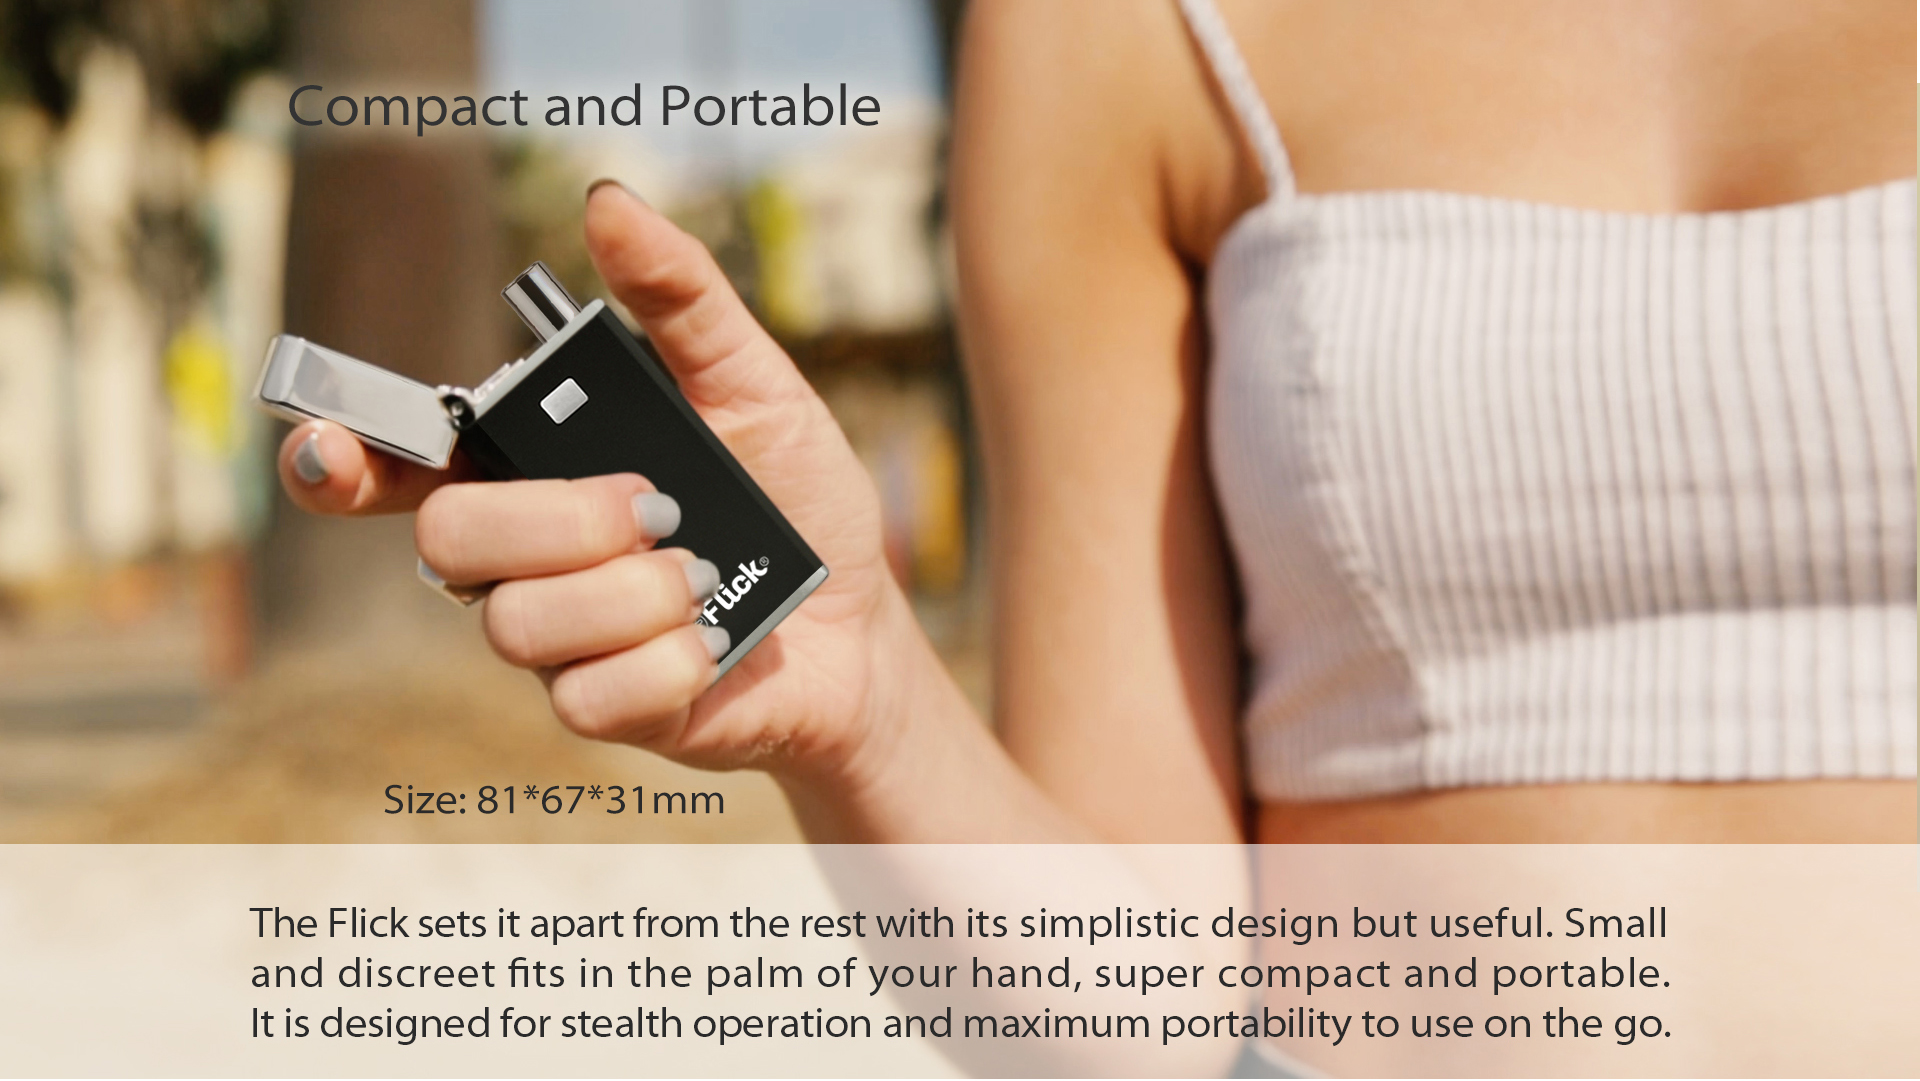 Yocan Flick is a small and compact device but with powerful features